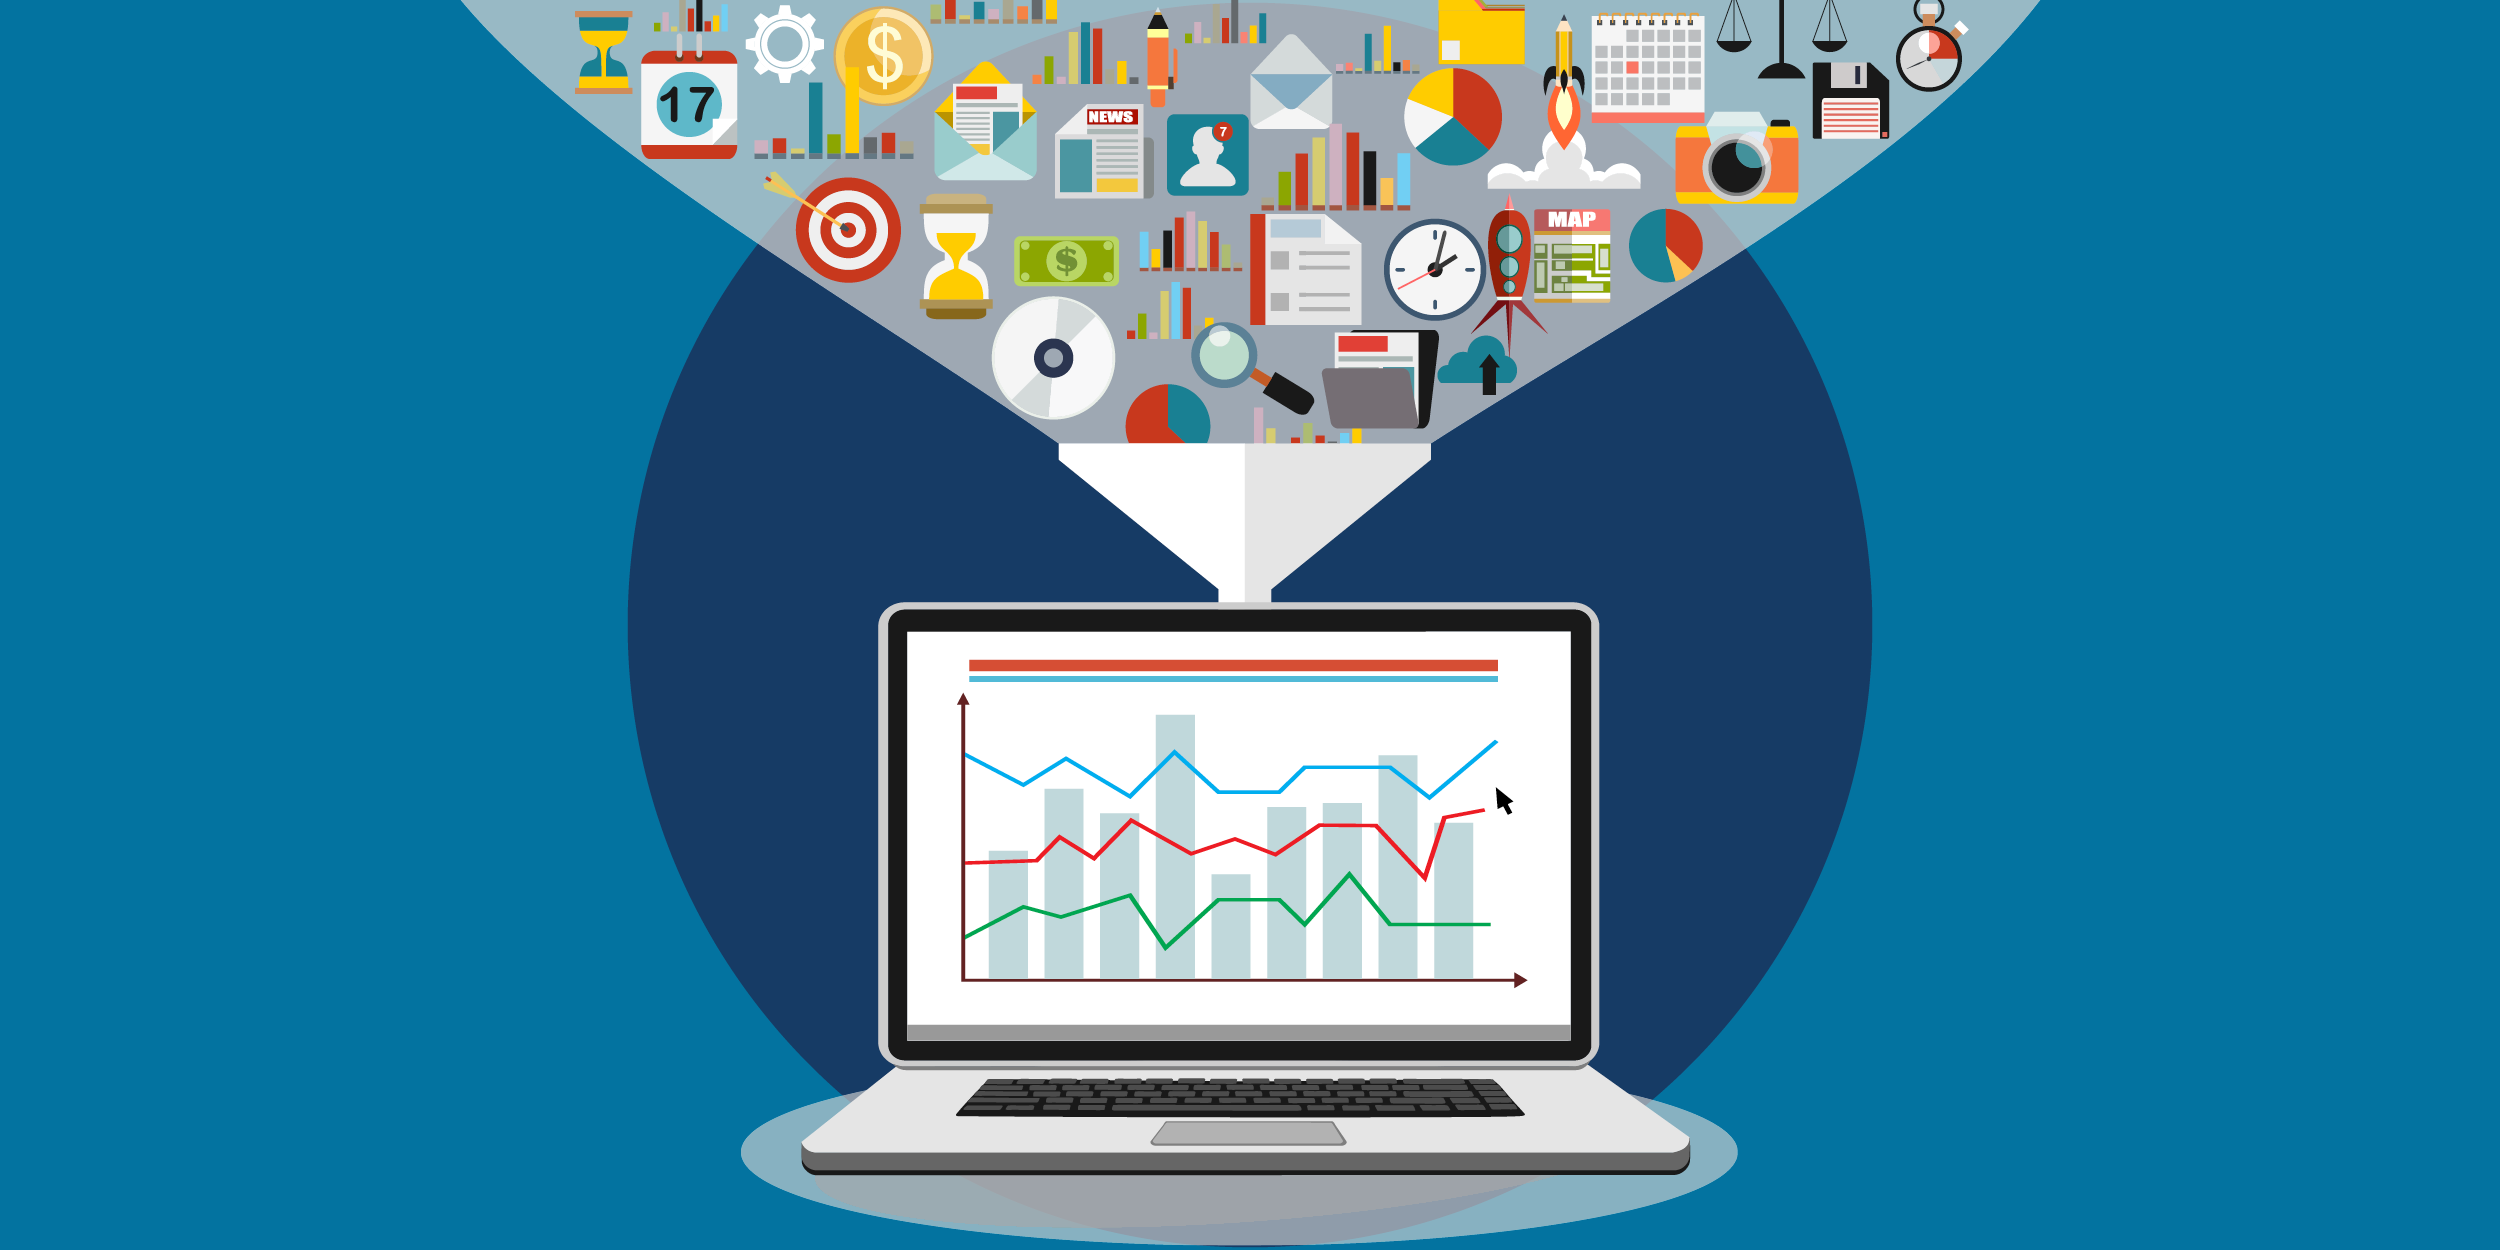 illustration of a laptop beaming out all kinds of nonprofit data, represented by calendar page, clock, magnifying glass, file folder, pie chart, etc.